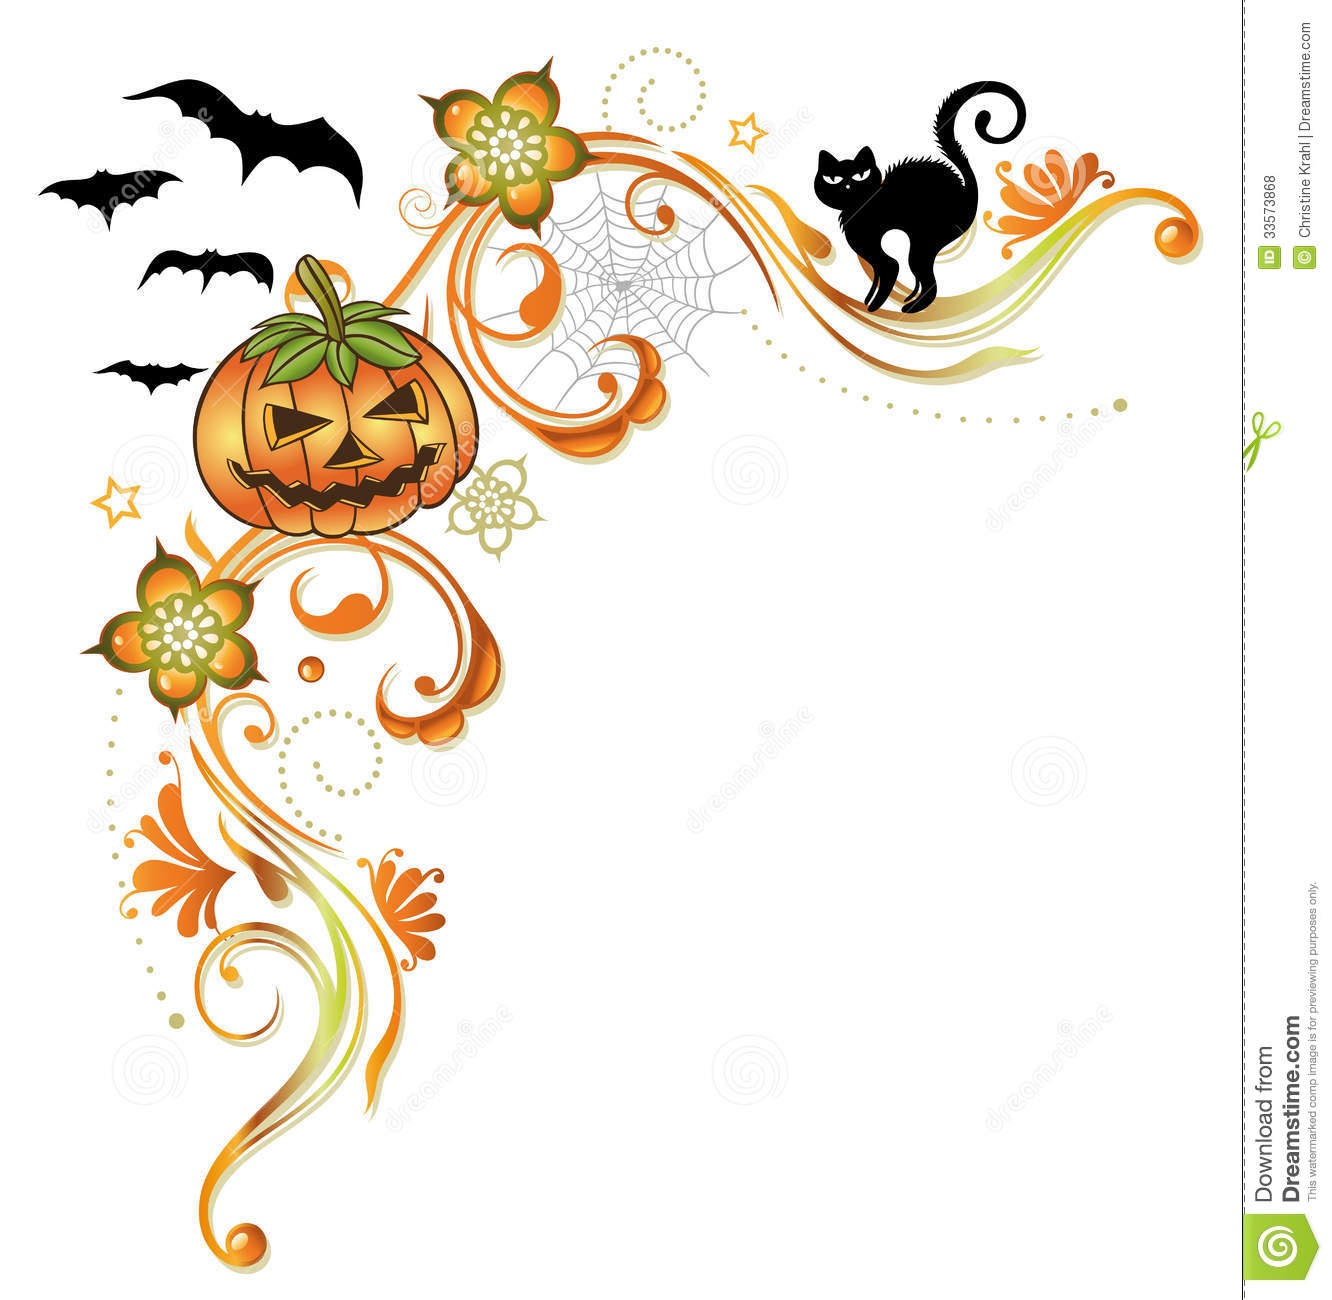 Stationary Borders Clipart | Free Download Best Stationary Borders - Free Printable Halloween Stationery Borders